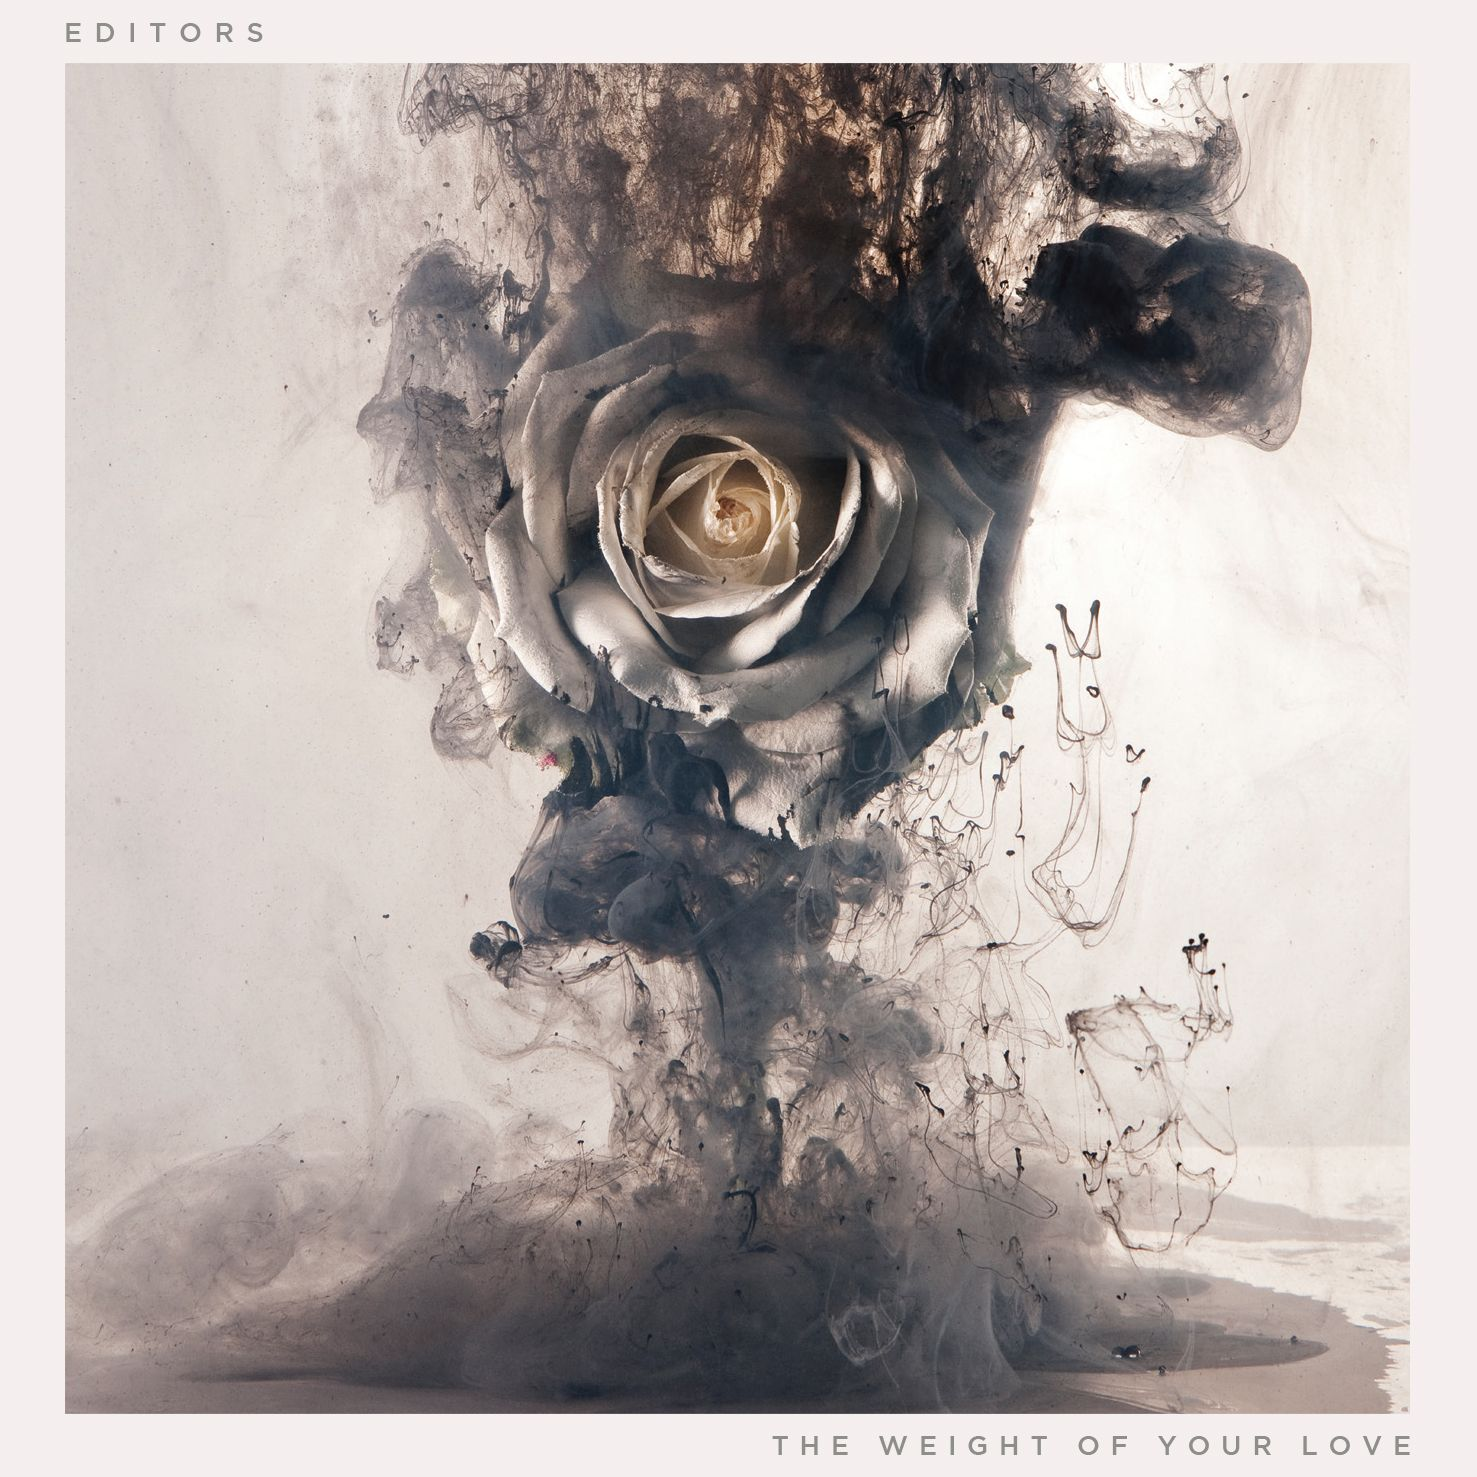 Editors - The Weight Of Your Love album cover